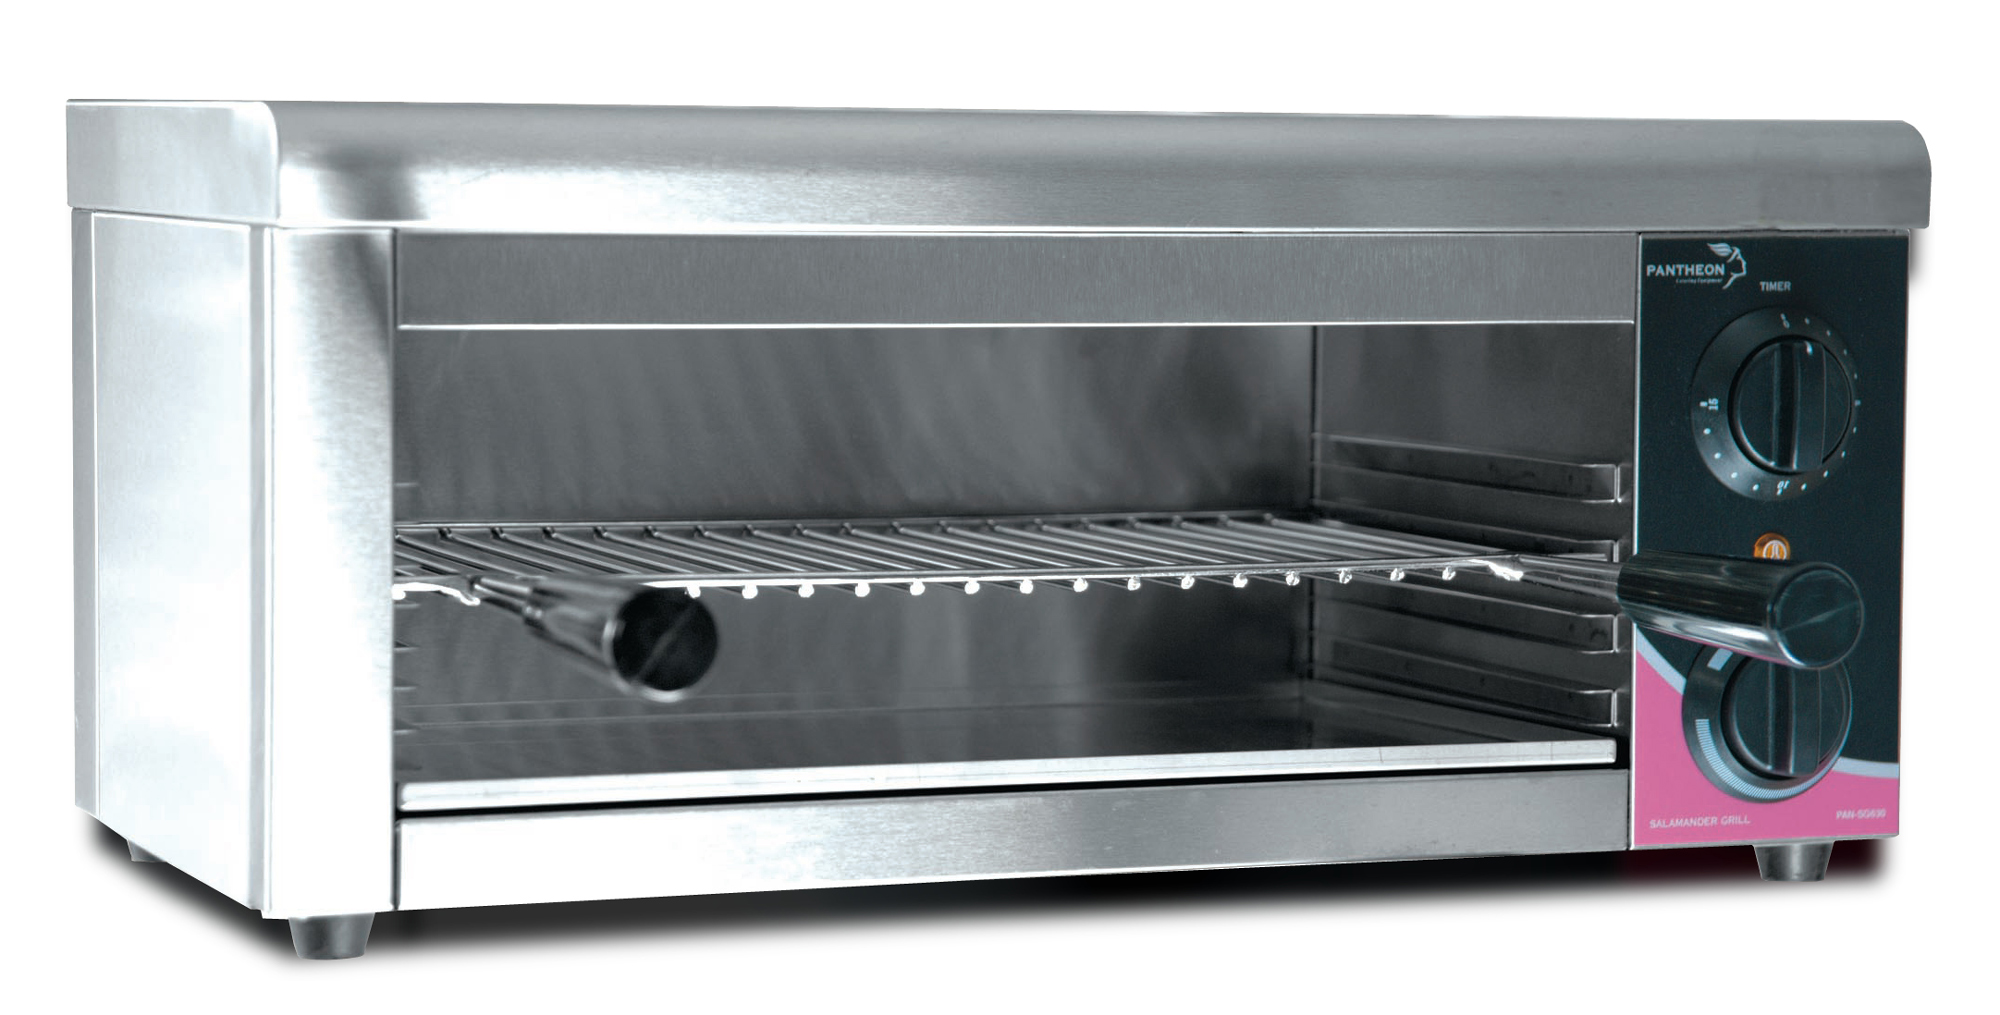 Sg630 Salamander Grill Pantheon Catering Equipment